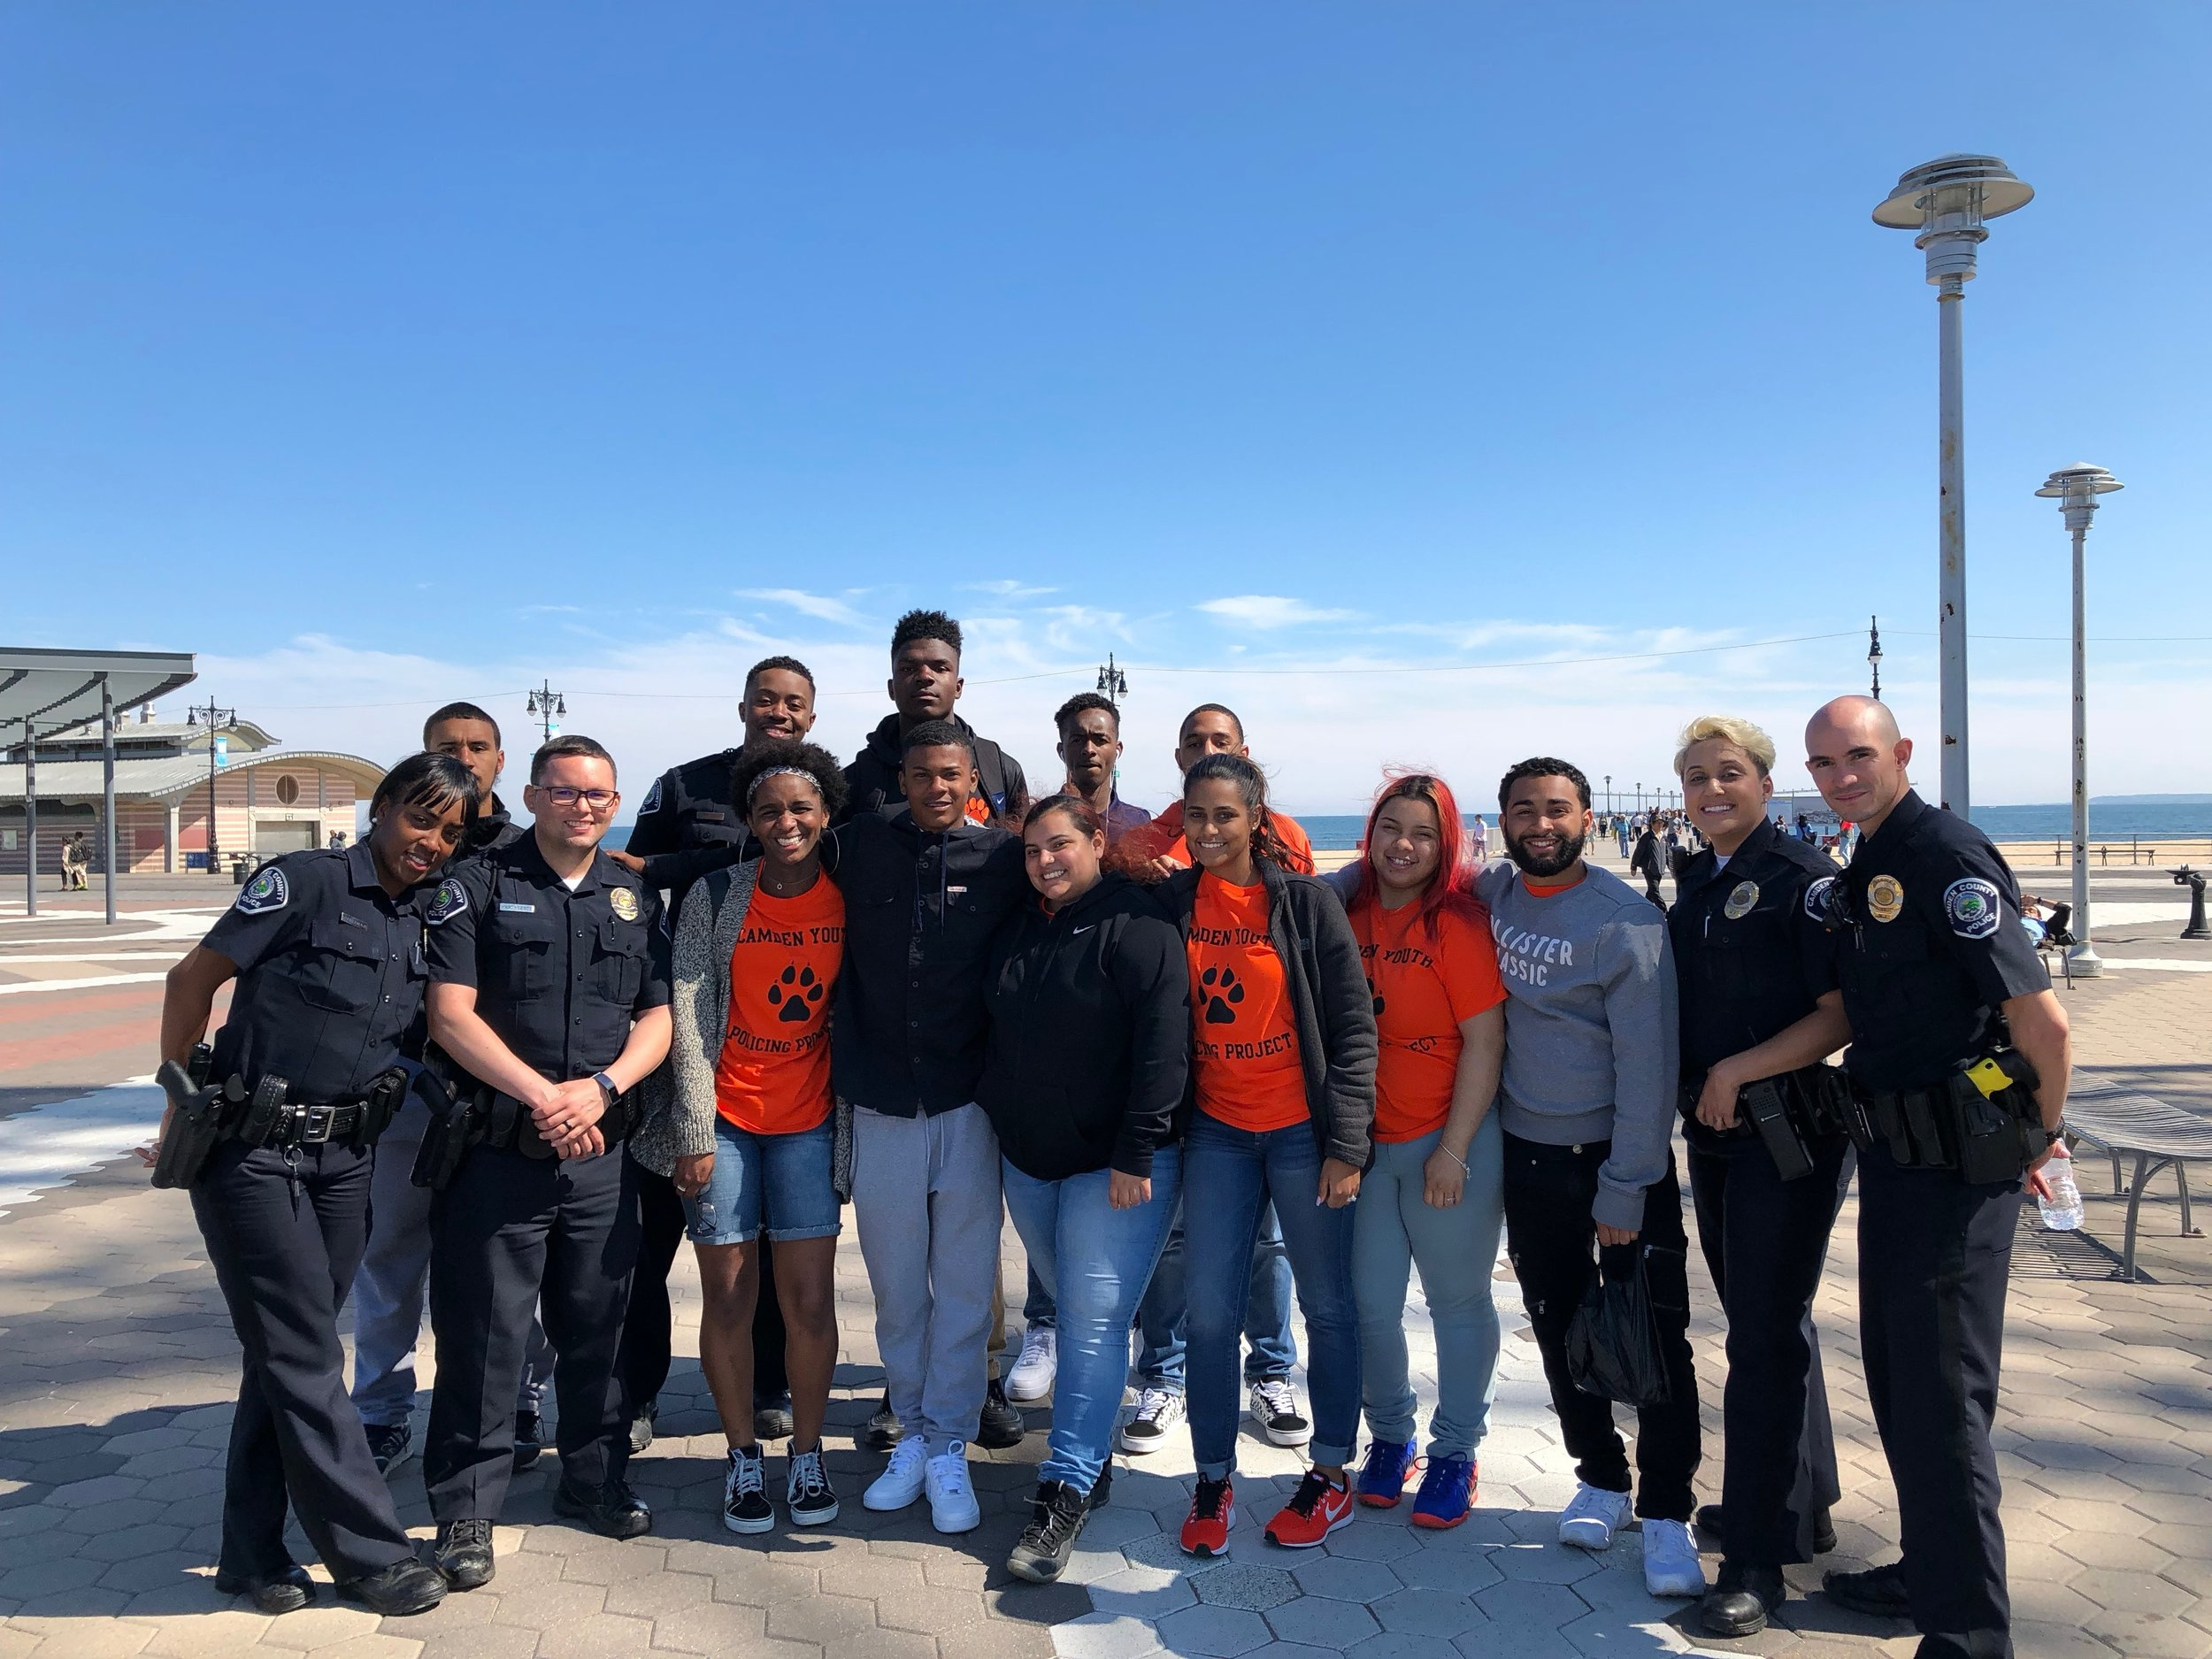 Students and officers enjoying the Coney Island Boardwalk.